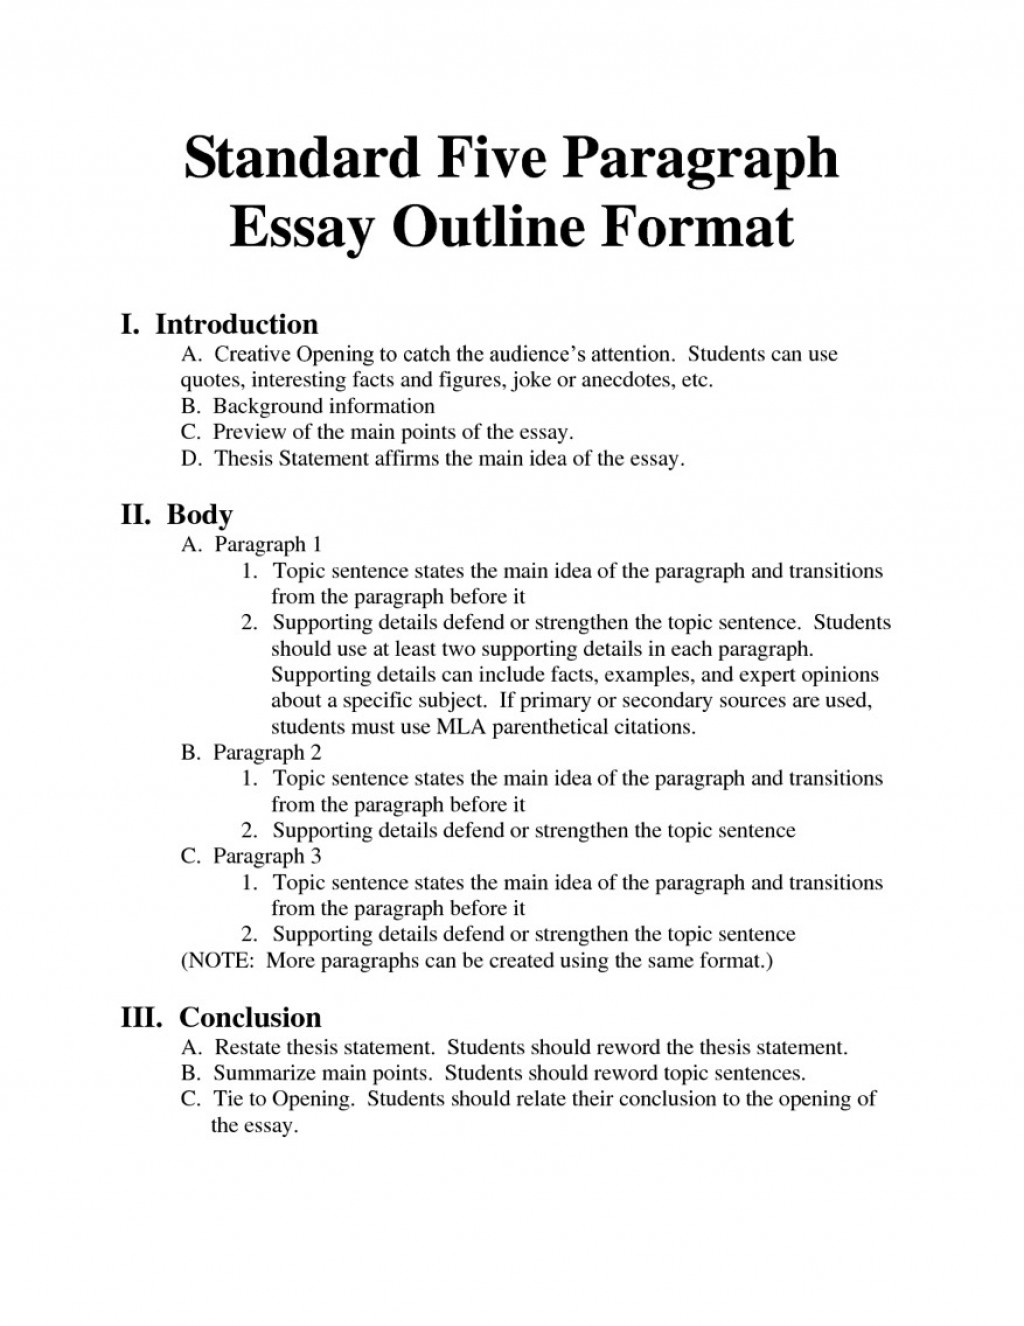 010 Essay Example Profile Outline Medea Oglasi History Citation Format Chicago Art Extended Ap Oral Bibliography Singular Template On A Place Layout Large